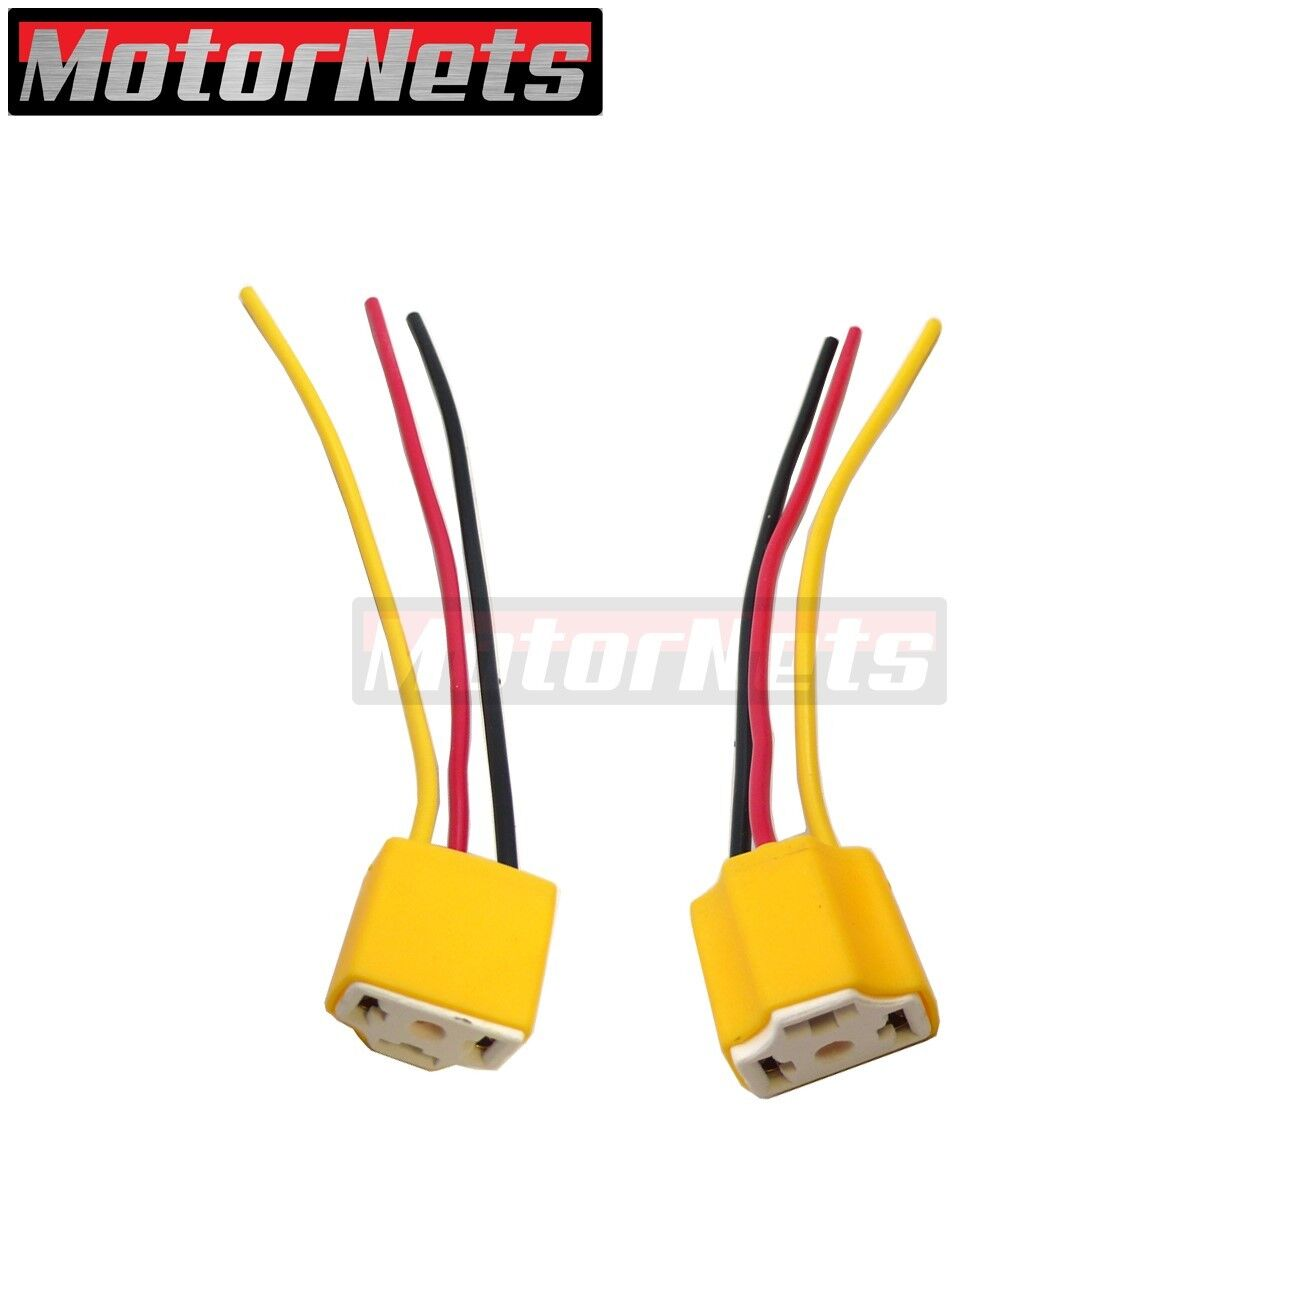 2x h4 9003 bulb headlight plug lamp socket connector wire harness 3details about 2x h4 9003 bulb headlight plug lamp socket connector wire harness 3 prong gm